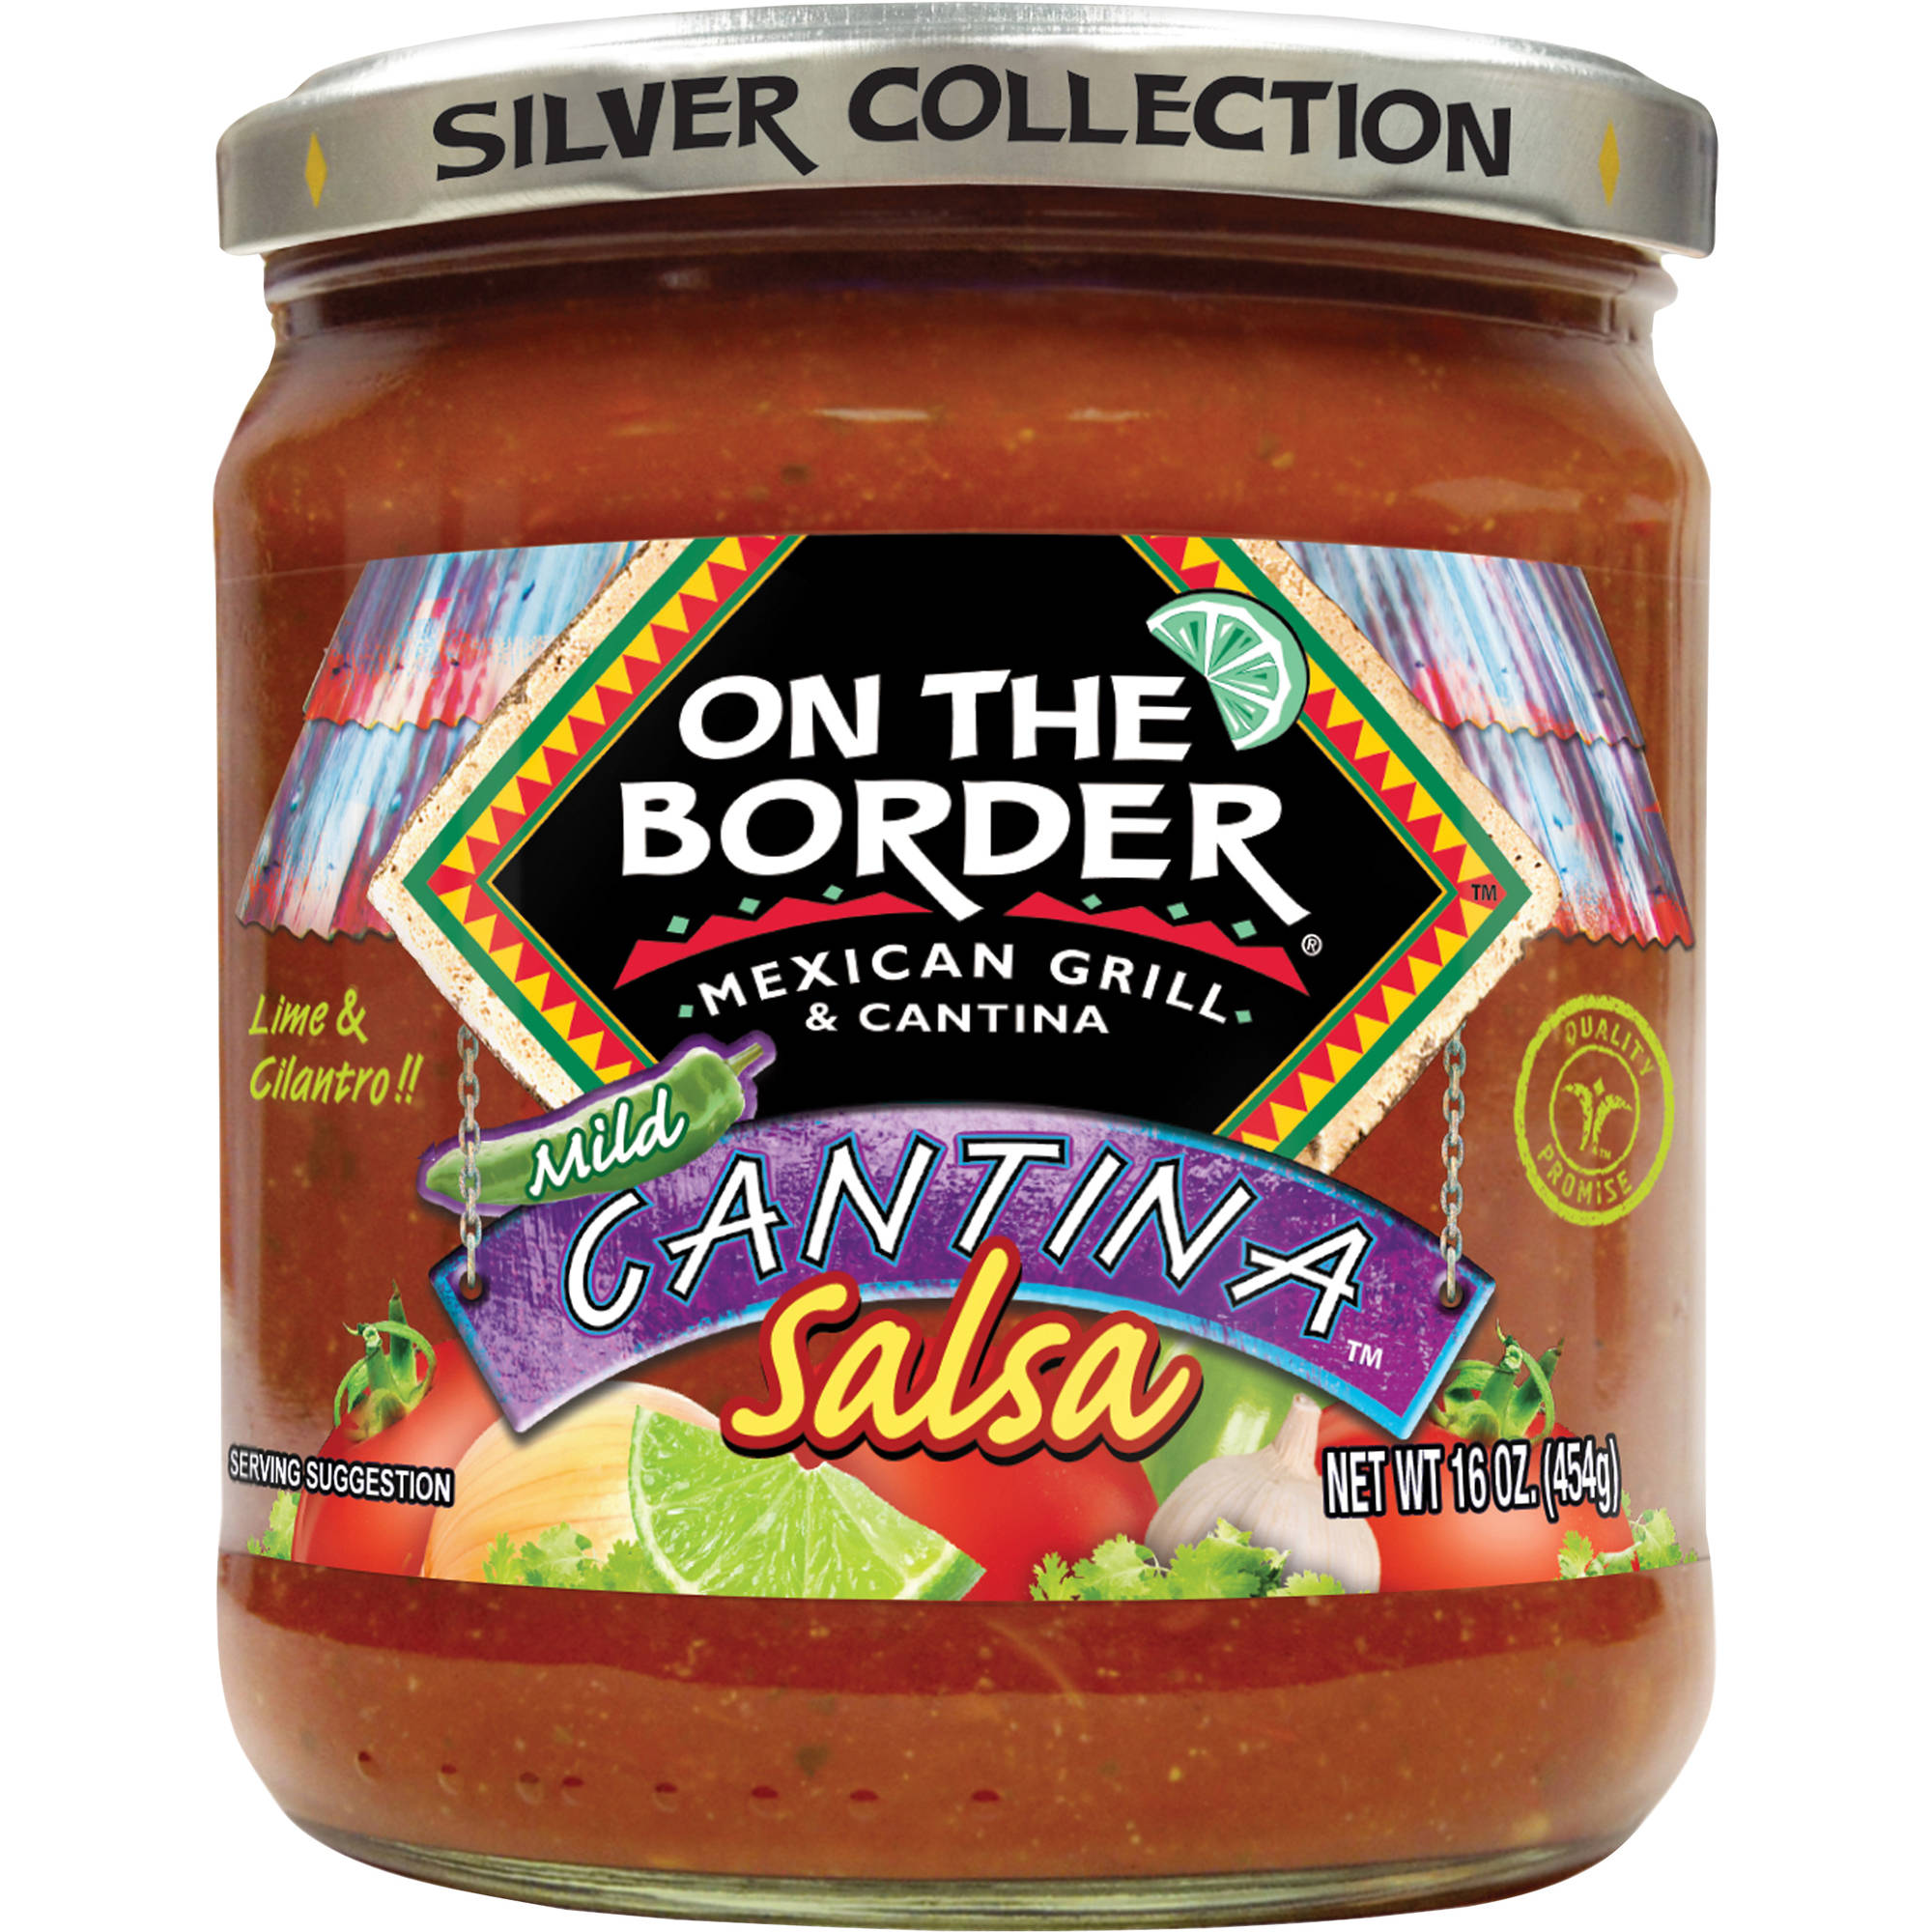 On The Border Mild Cantina Salsa, 16 oz